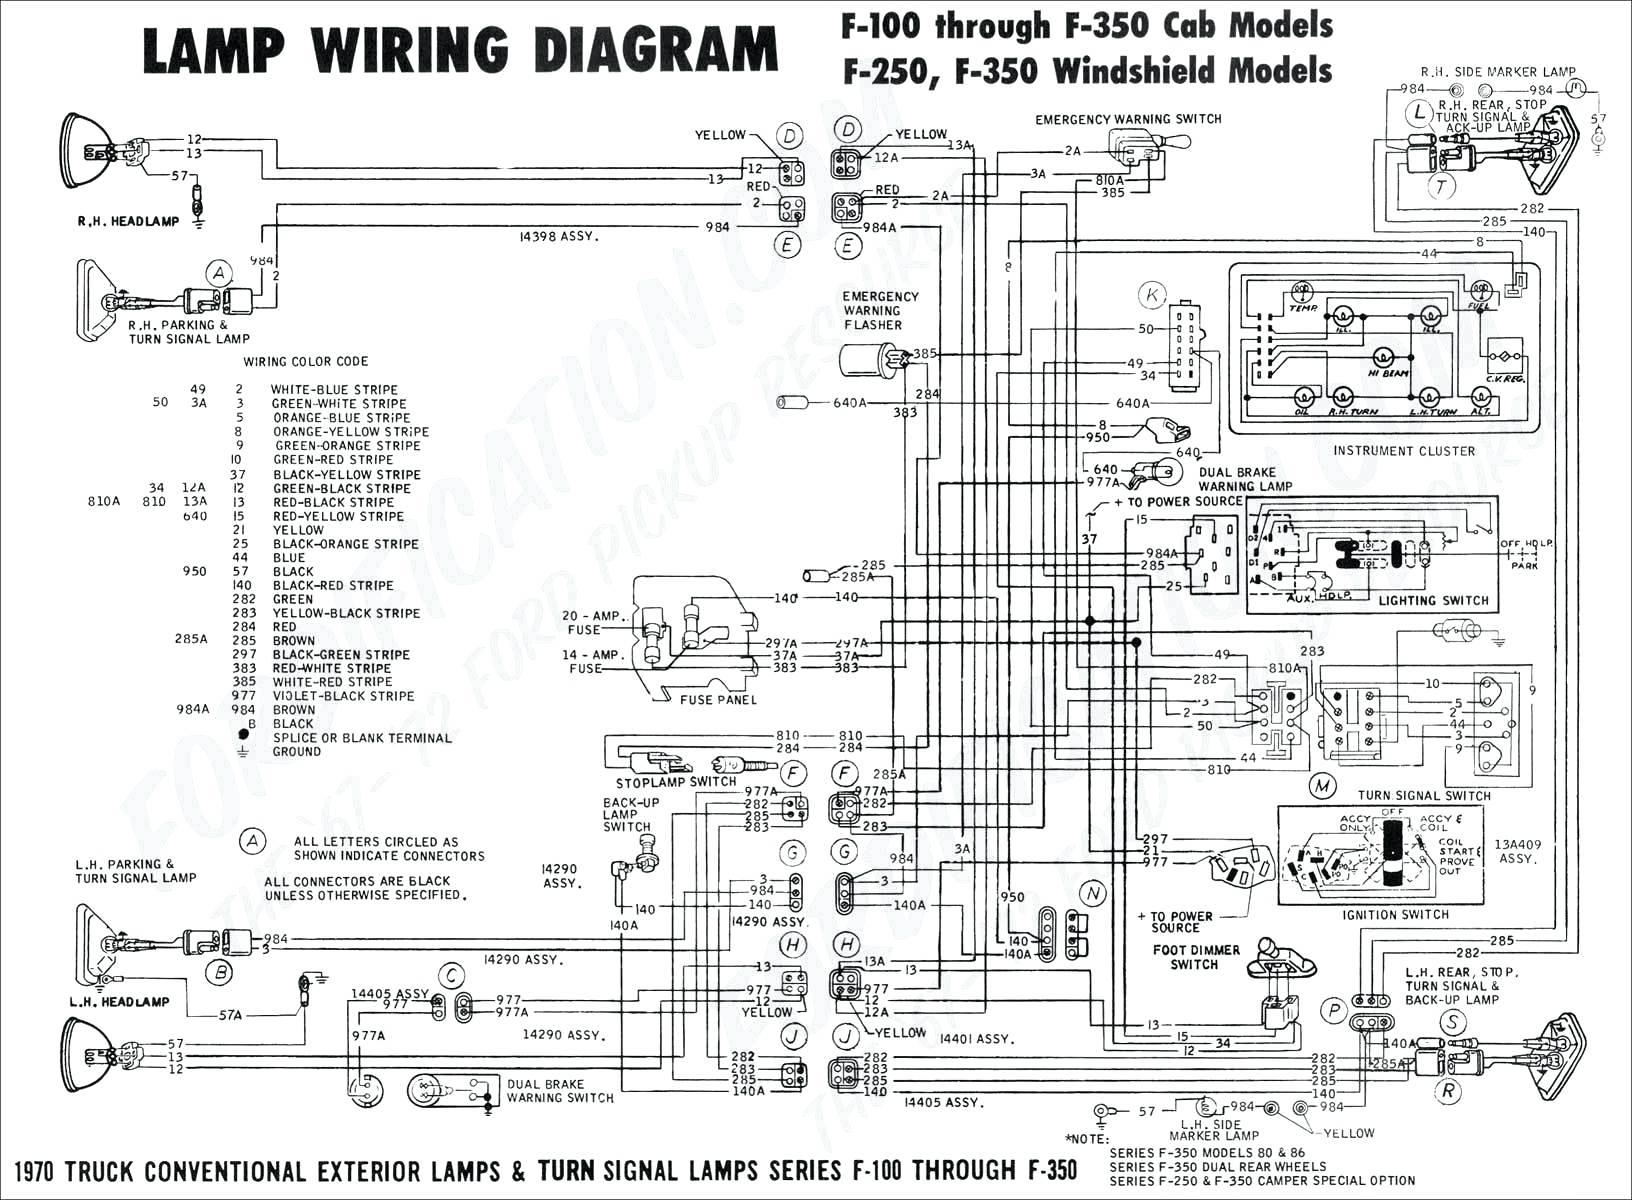 2005 Dodge Ram 2500 Brake Light Wiring - Wiring Diagrams List